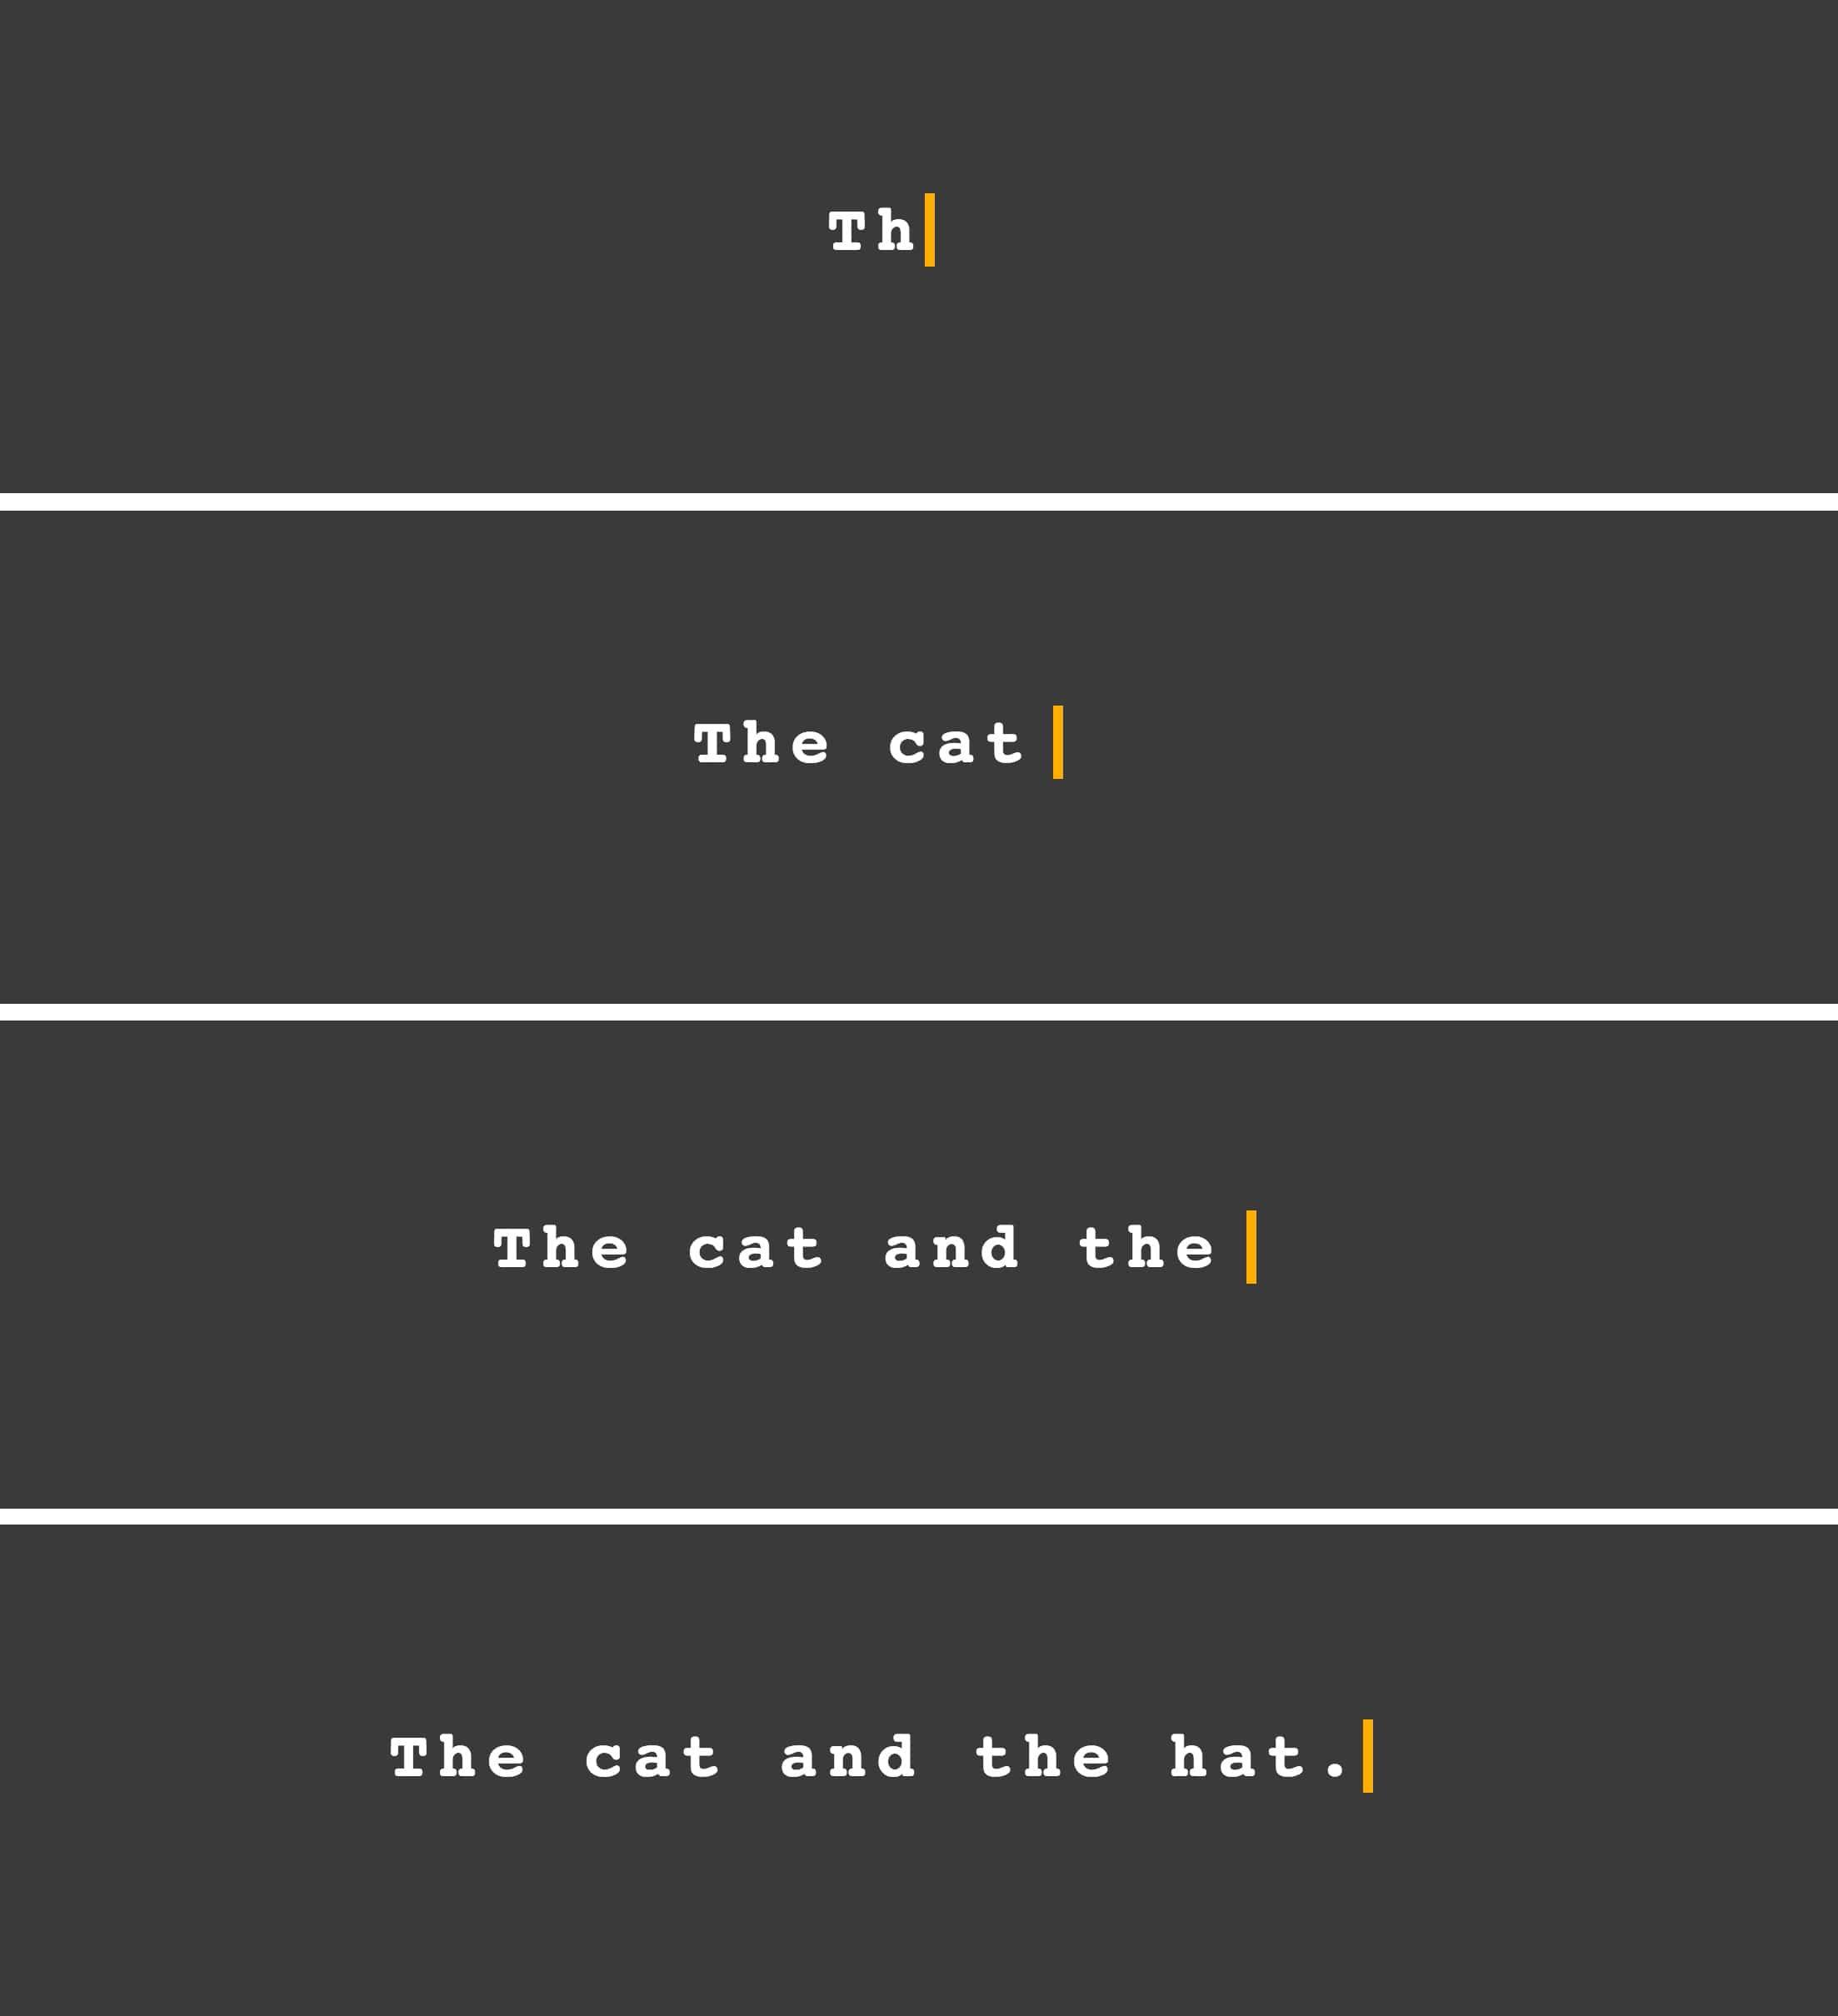 Animate Text Like a Typewriter | CSS-Tricks